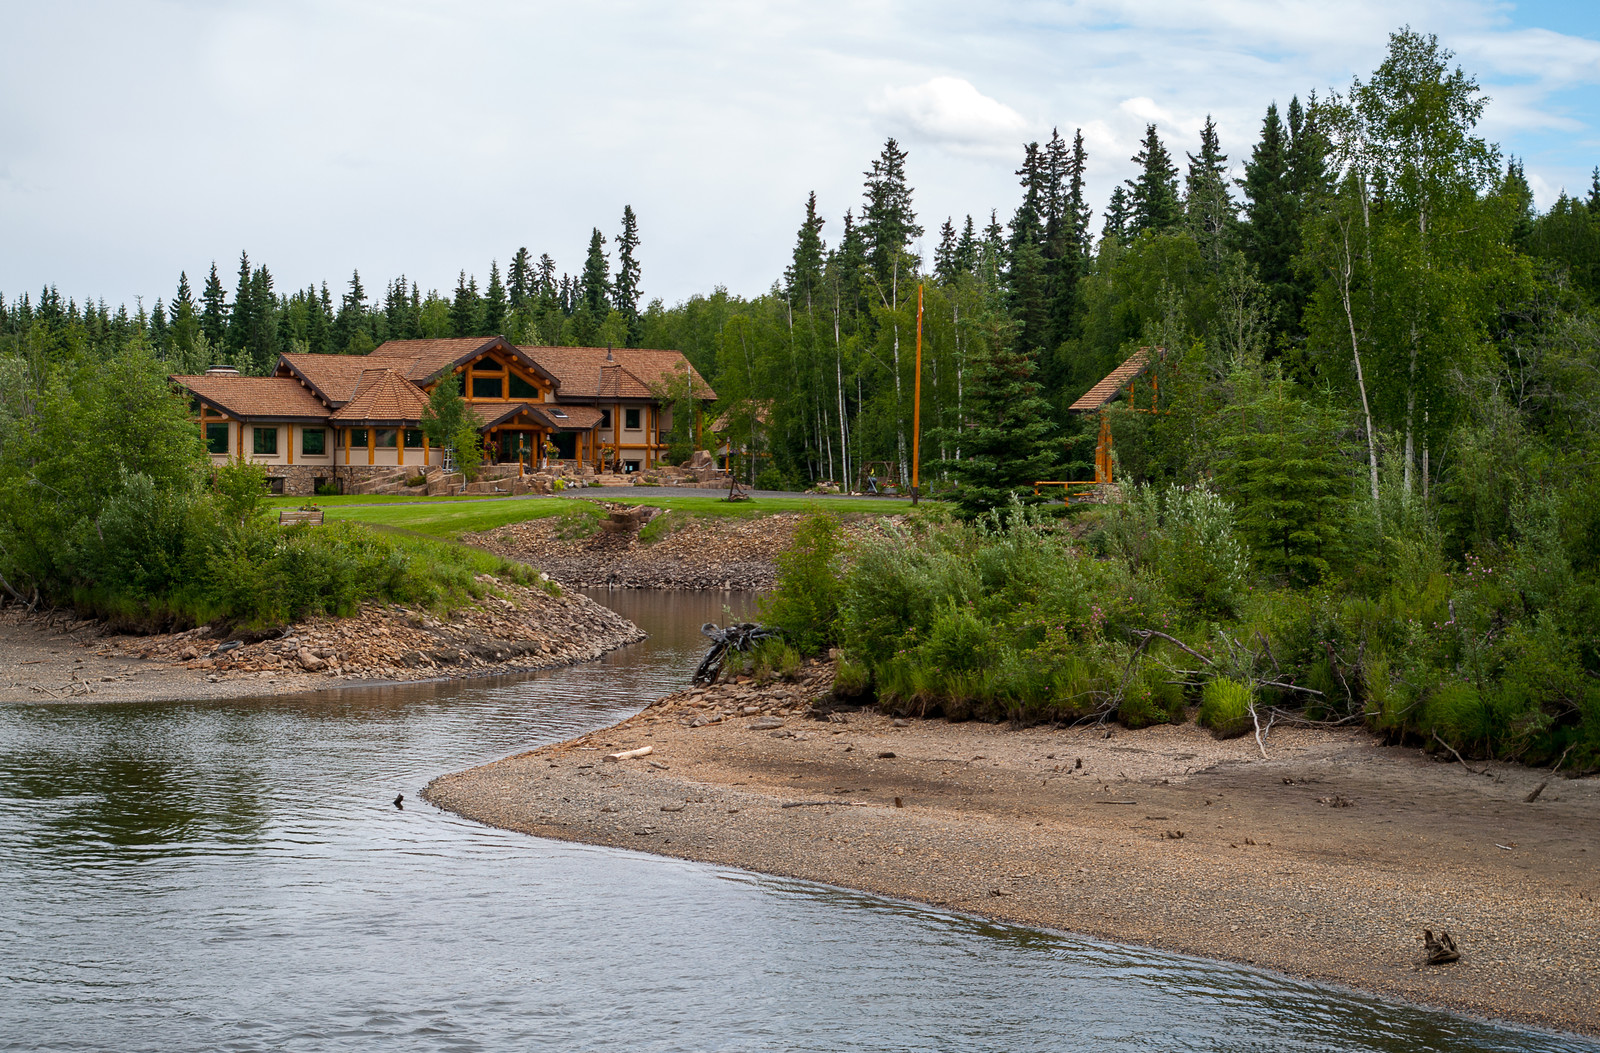 Log home along the river with a well-manicured front yard  and evergreens lining the banks and set in theback of the home and edge of the yard